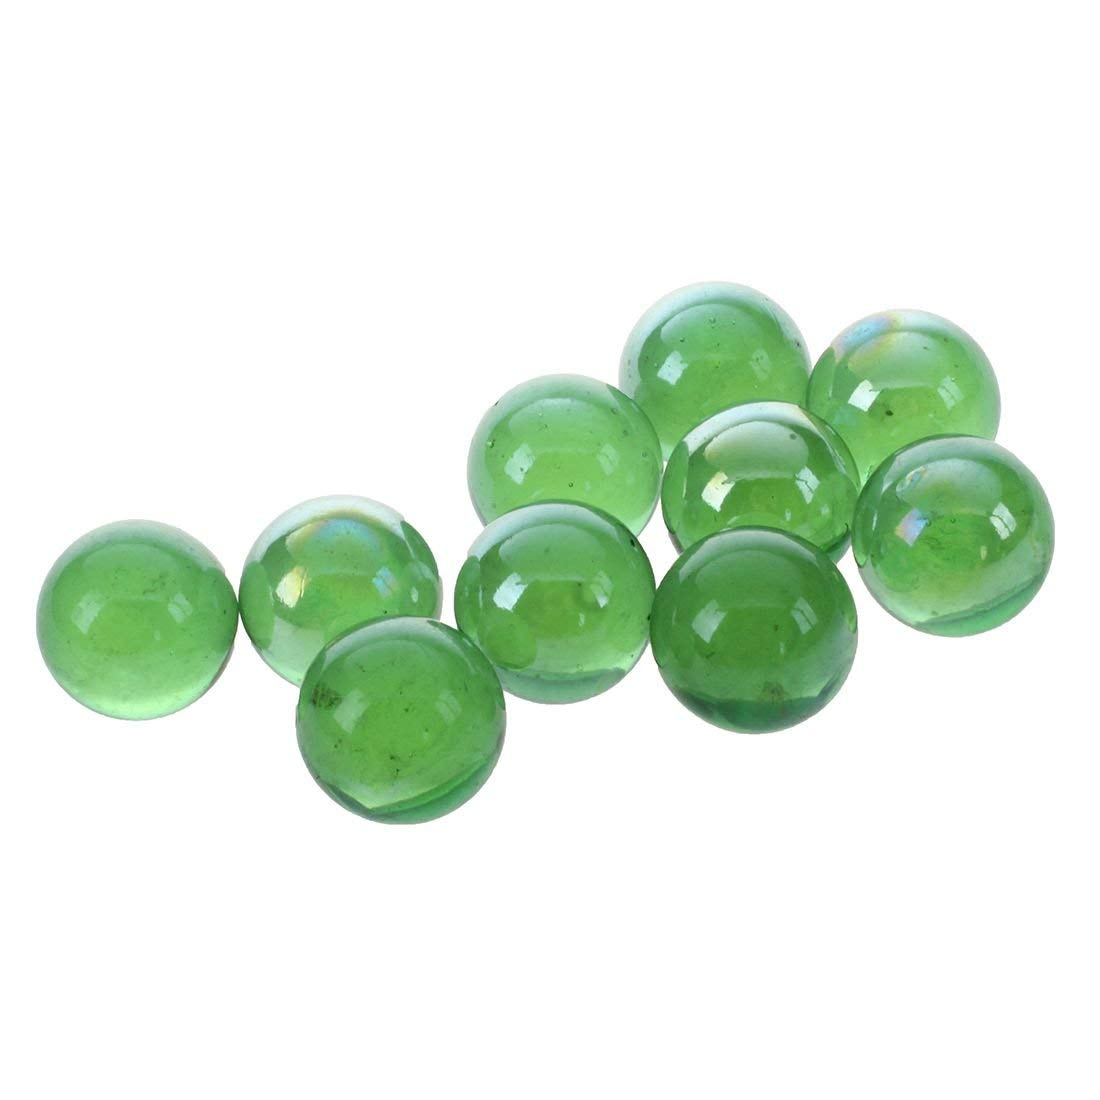 Tcplyn Premium Quality Glass Marbles - 10 Pcs Marbles 16mm Glass Marbles Knicker Glass Balls Decoration Color Nuggets Toy Green by Tcplyn (Image #6)